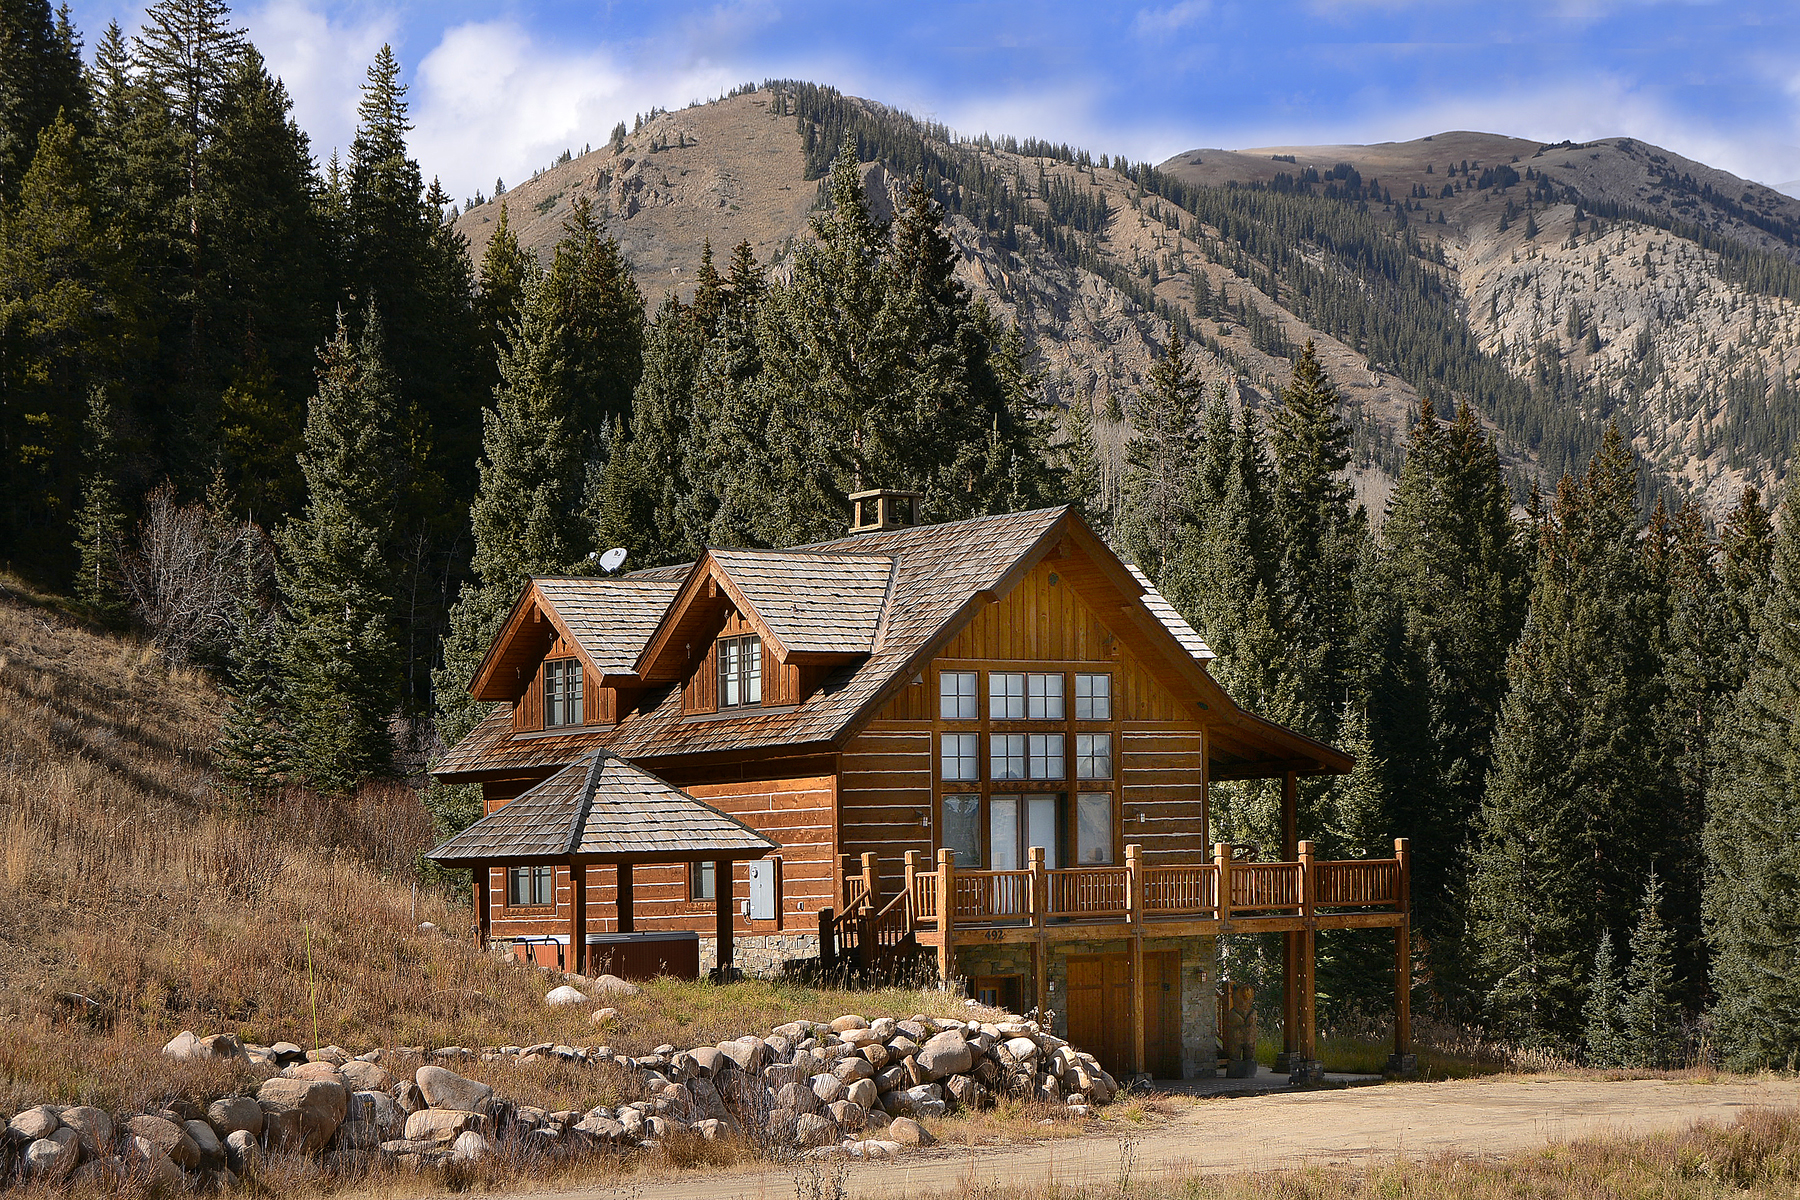 Single Family Home for Sale at Exclusive Mountain Retreat 492 Coal Camp Road Crested Butte, Colorado 81224 United States